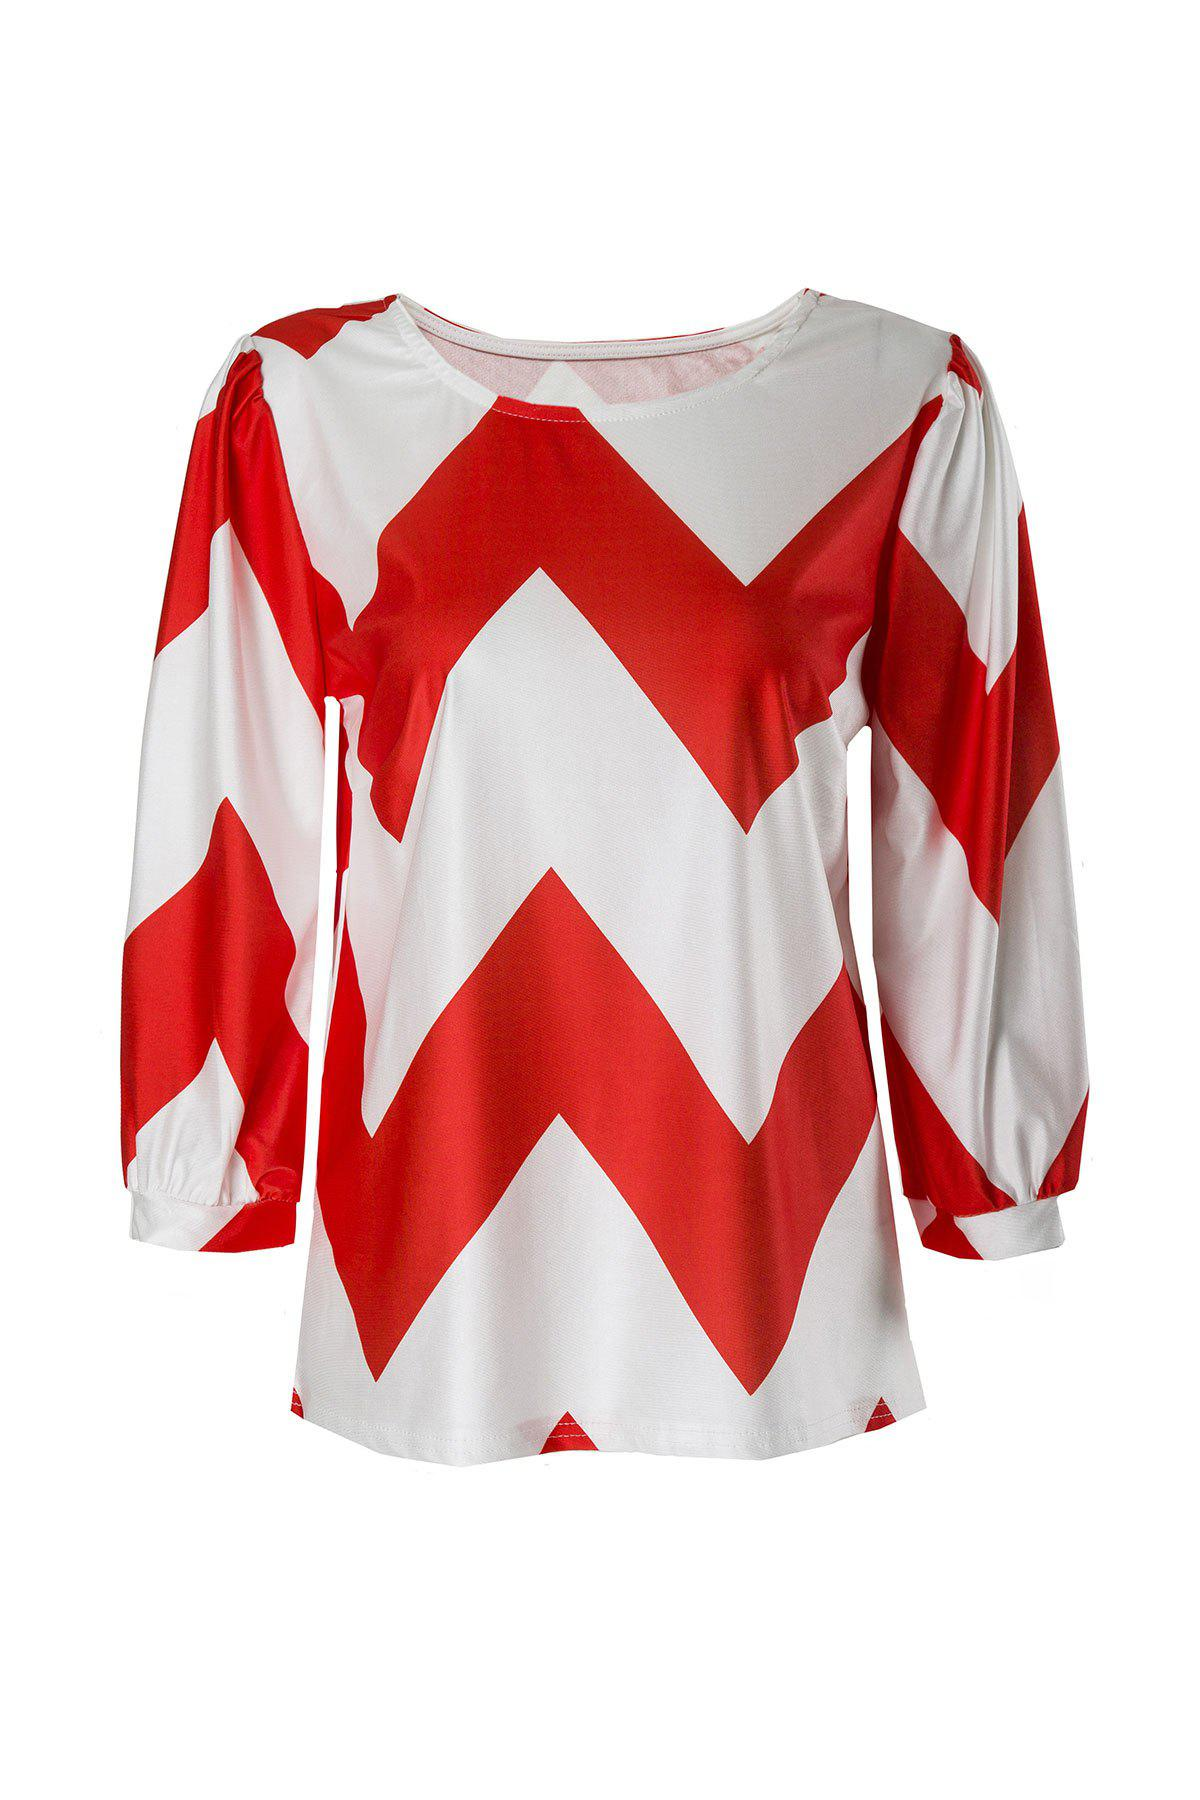 Trendy Chevron Printed 3/4 Sleeve Loose Blouse For Women - RED/WHITE M